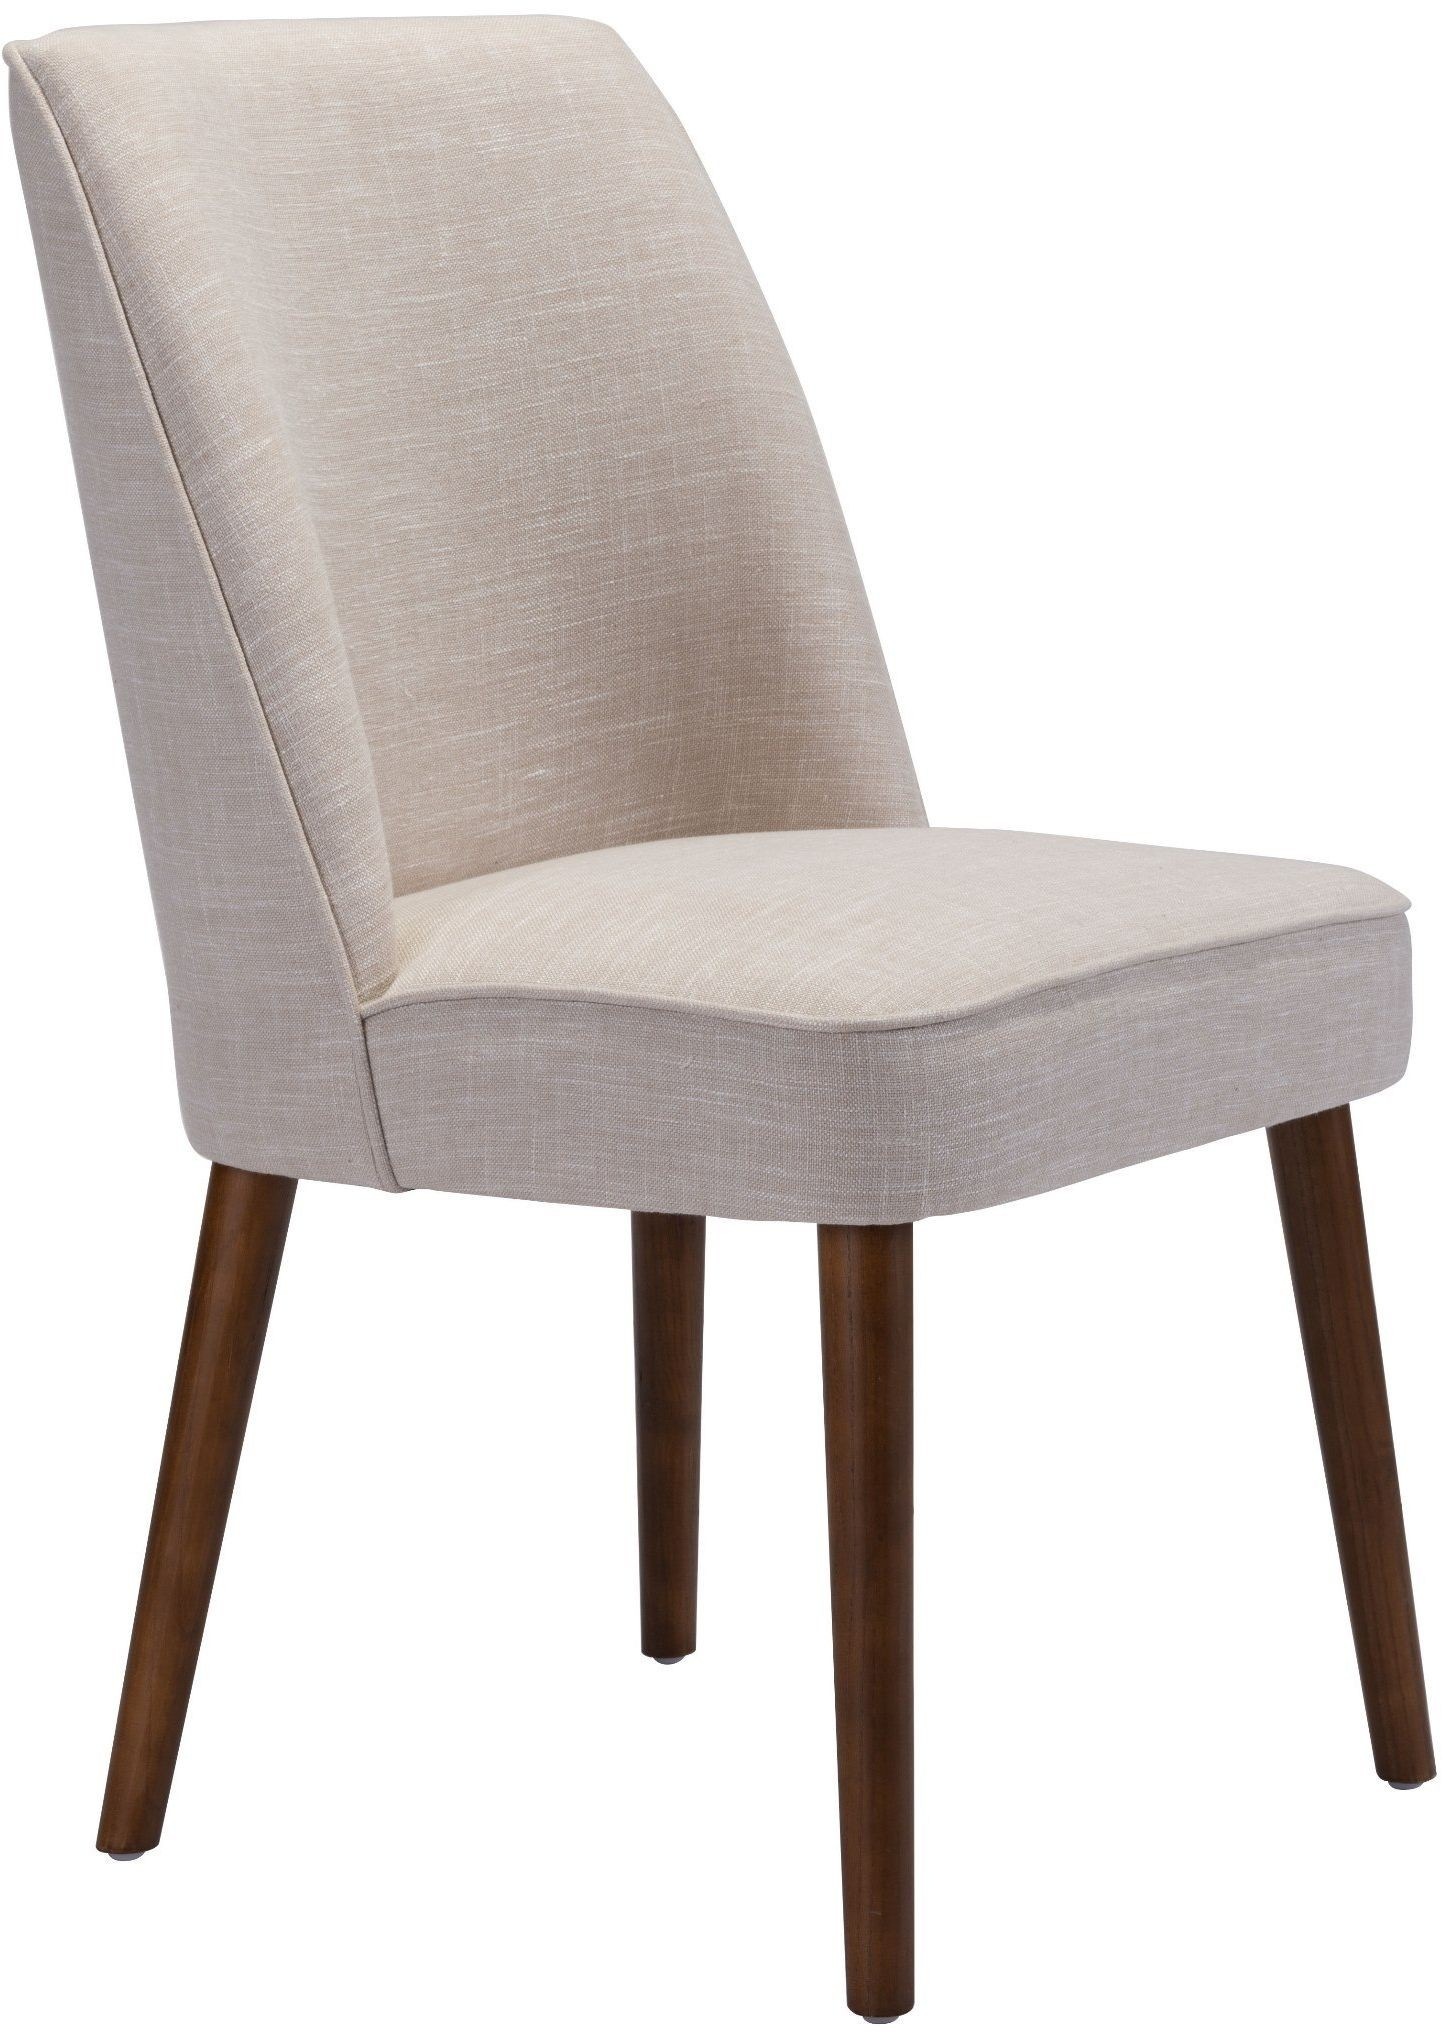 Kennedy Beige Dining Chair Set Of 2 From Zuo Coleman